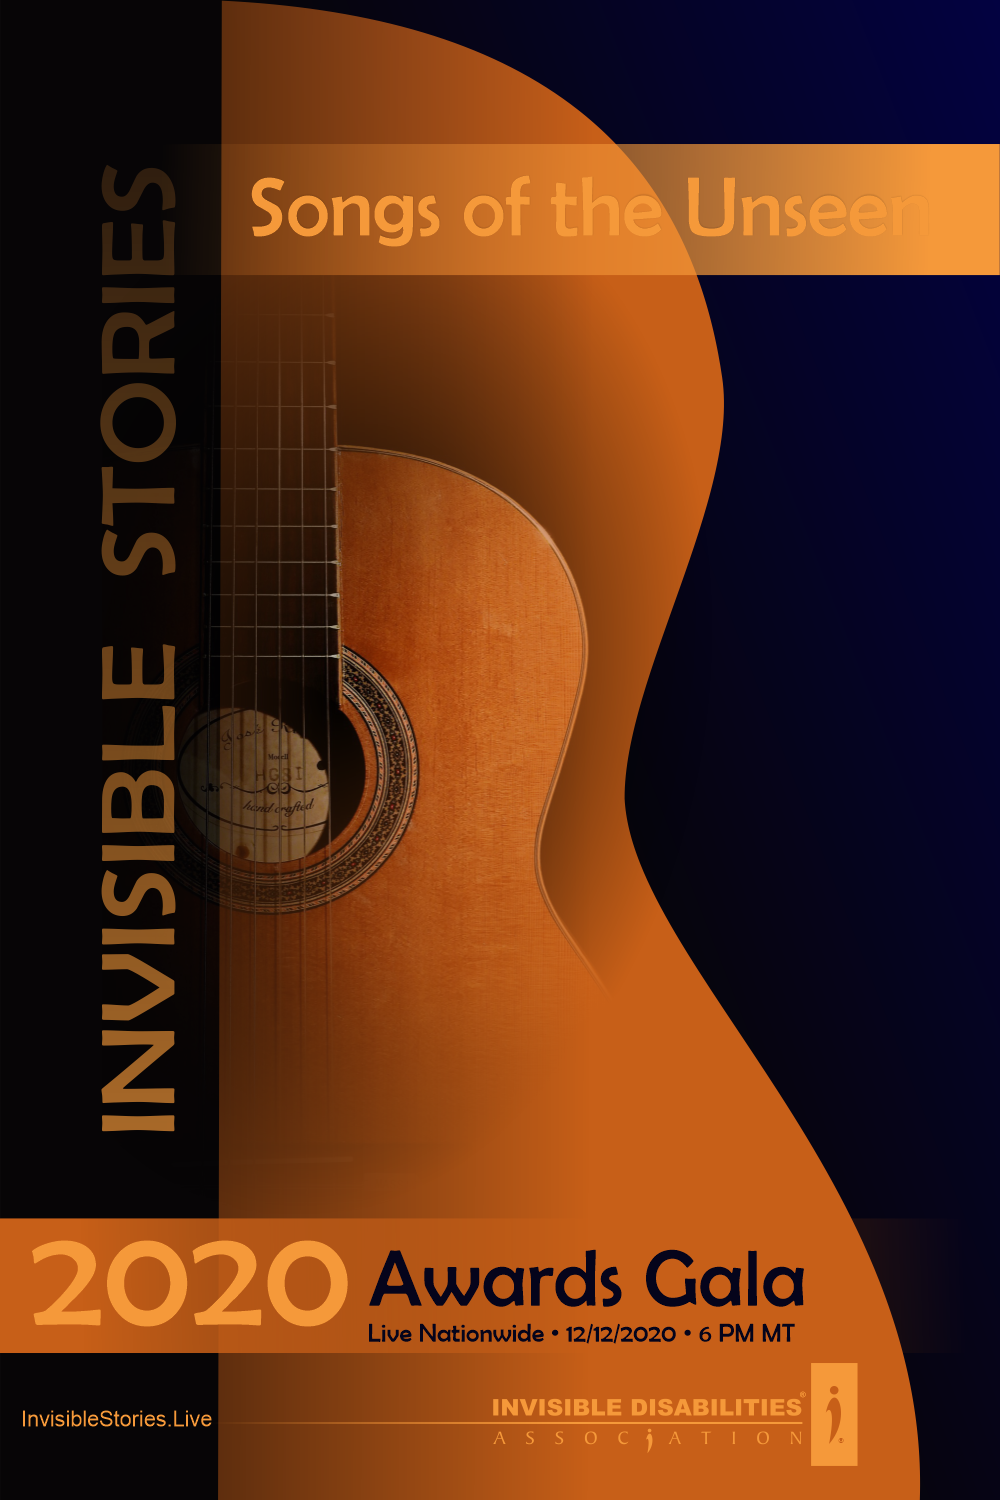 2020 Awards Gala Logo - Invisible Stories - Invisible Disabilities Association - 12-12-2020